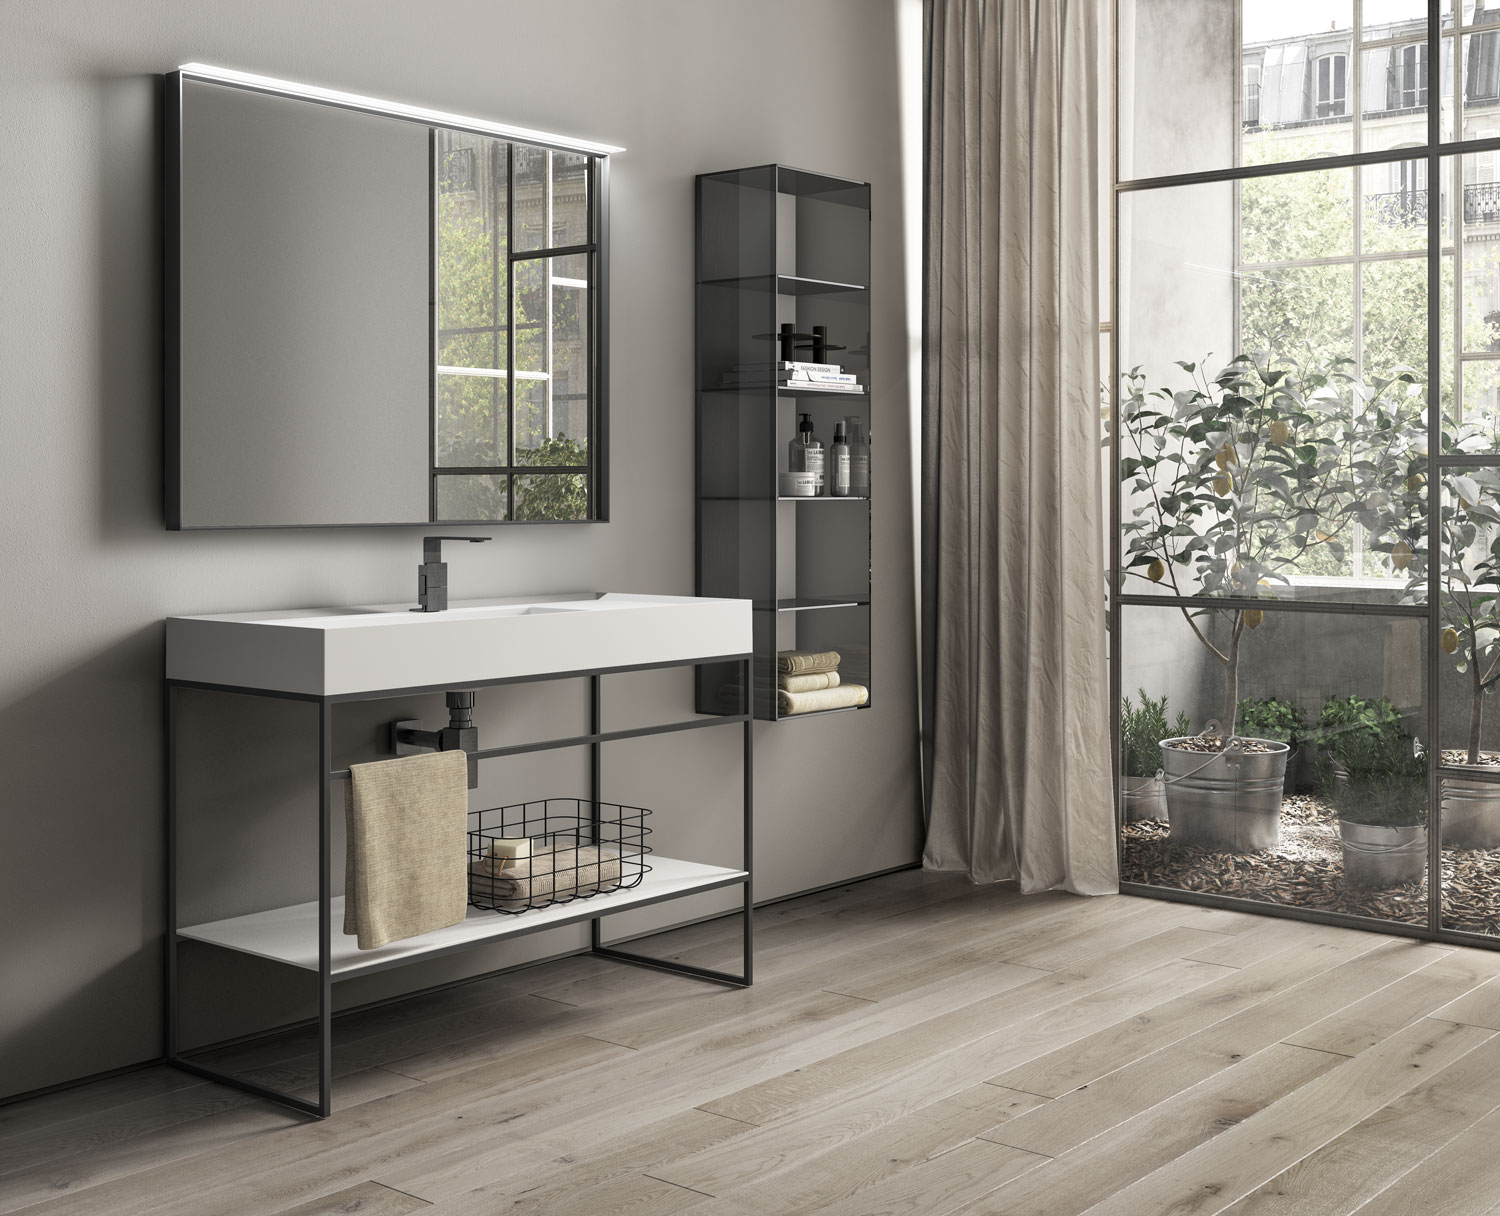 Mondo idea ideagroup blog - Bagno foto design ...